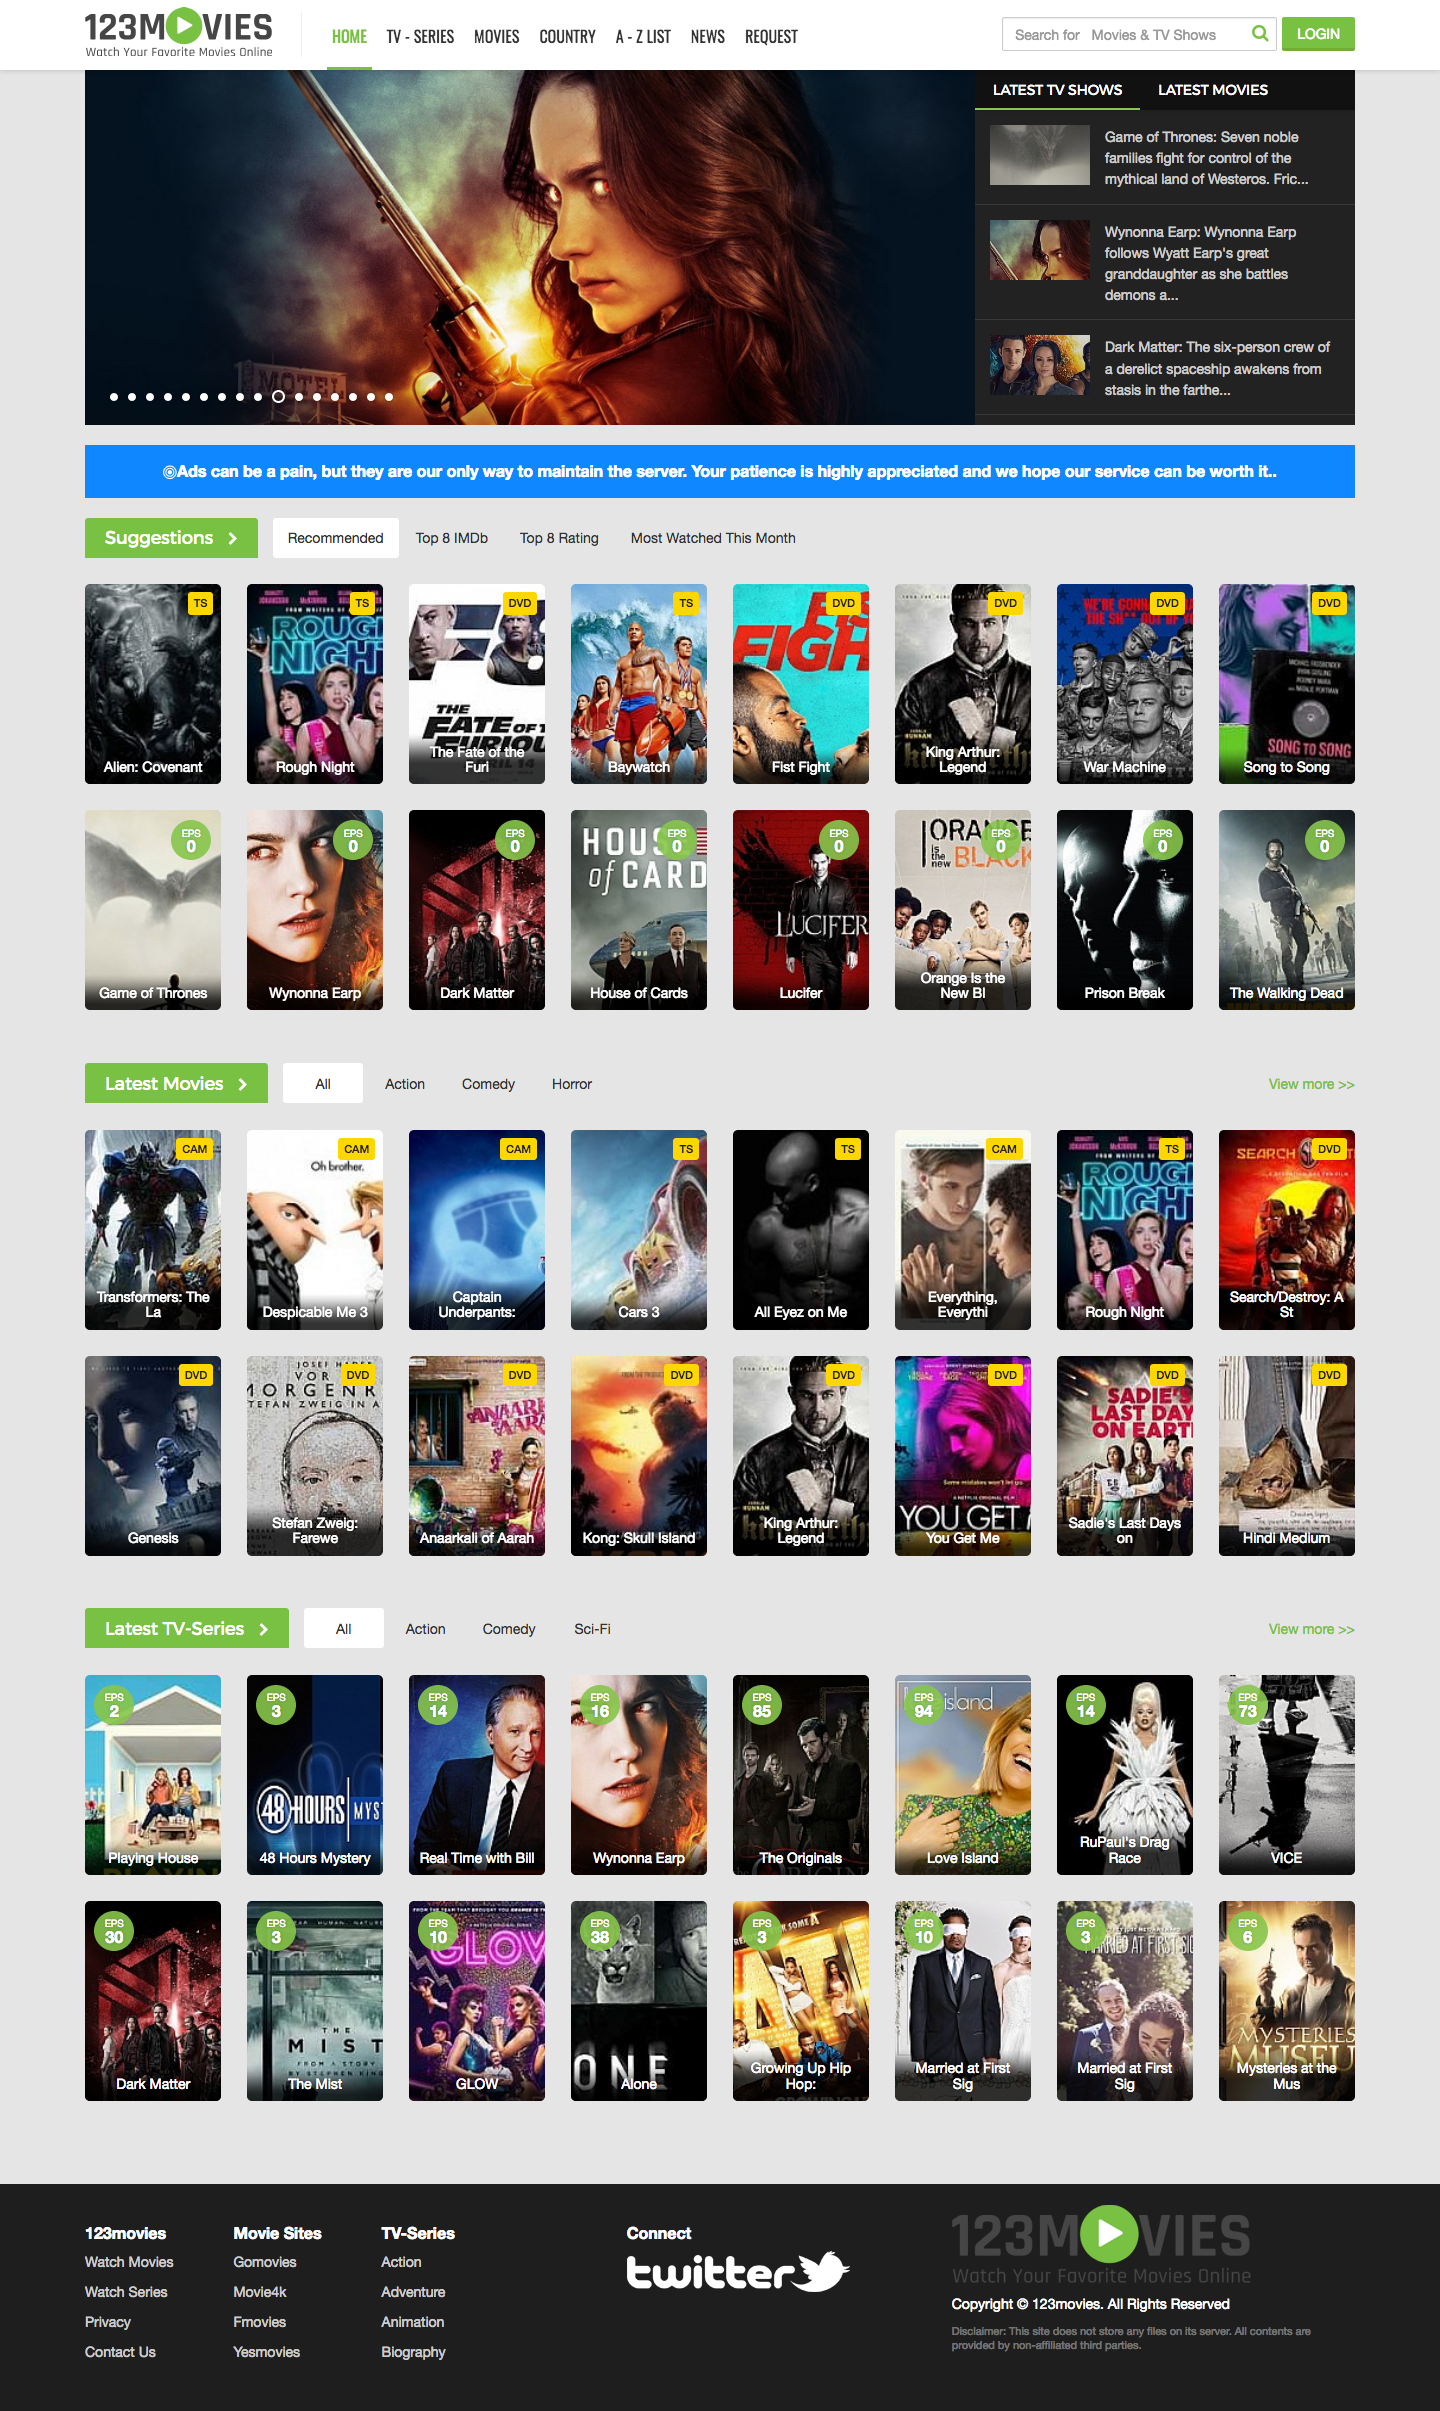 123movies New Website Free Tv And Movies Watch Free Movies Online Free Tv Shows Online